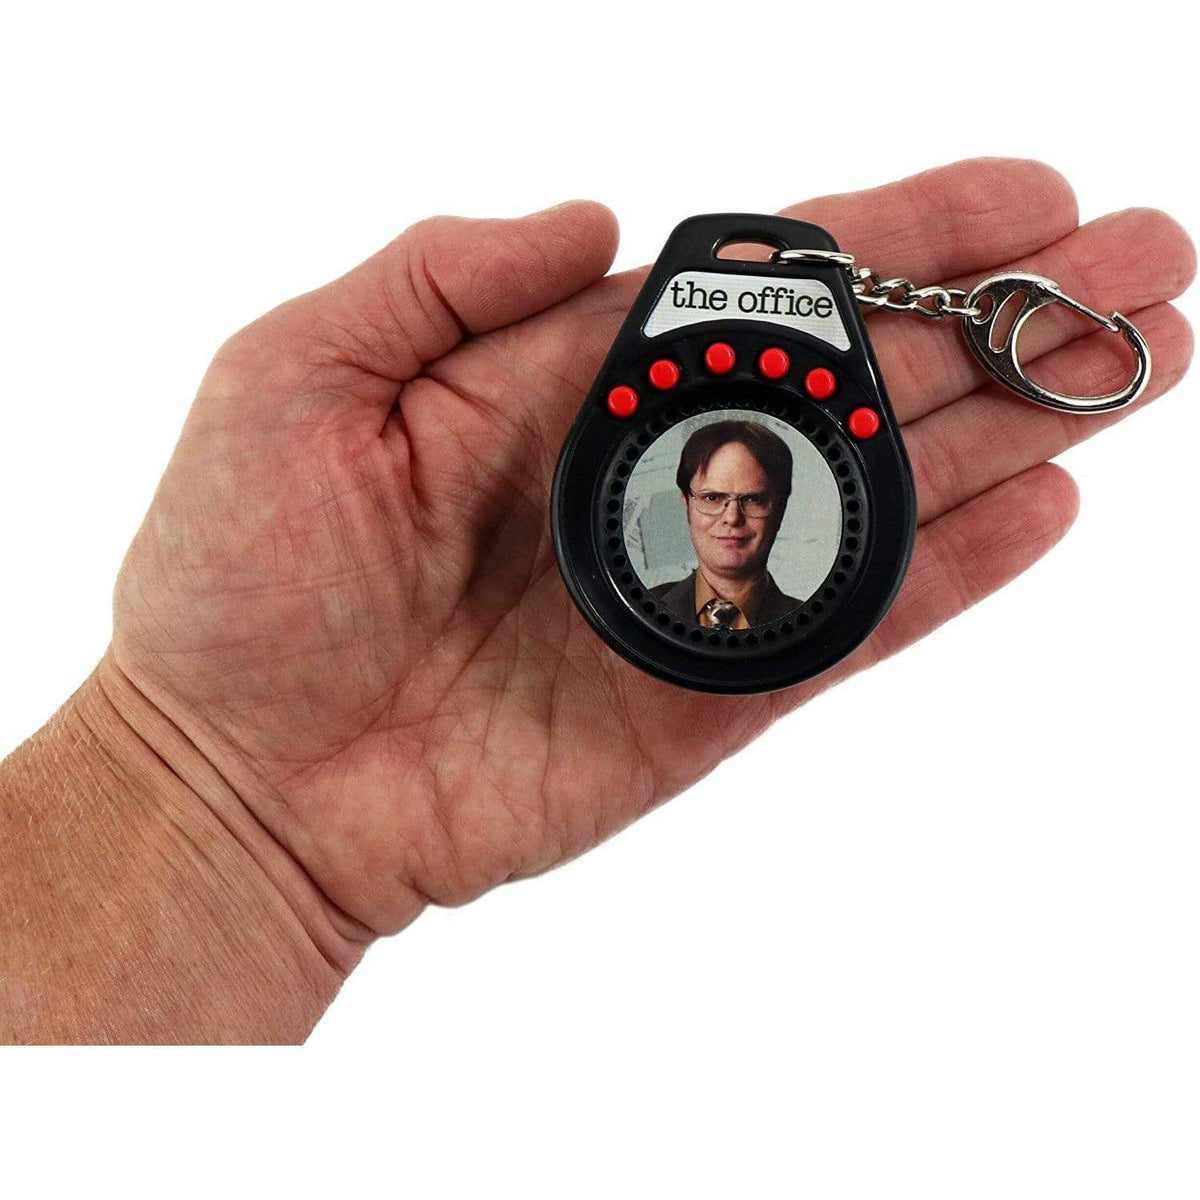 World's Coolest: The Office Dwight Talking Keychain Super Impulse Puzzles/Playthings